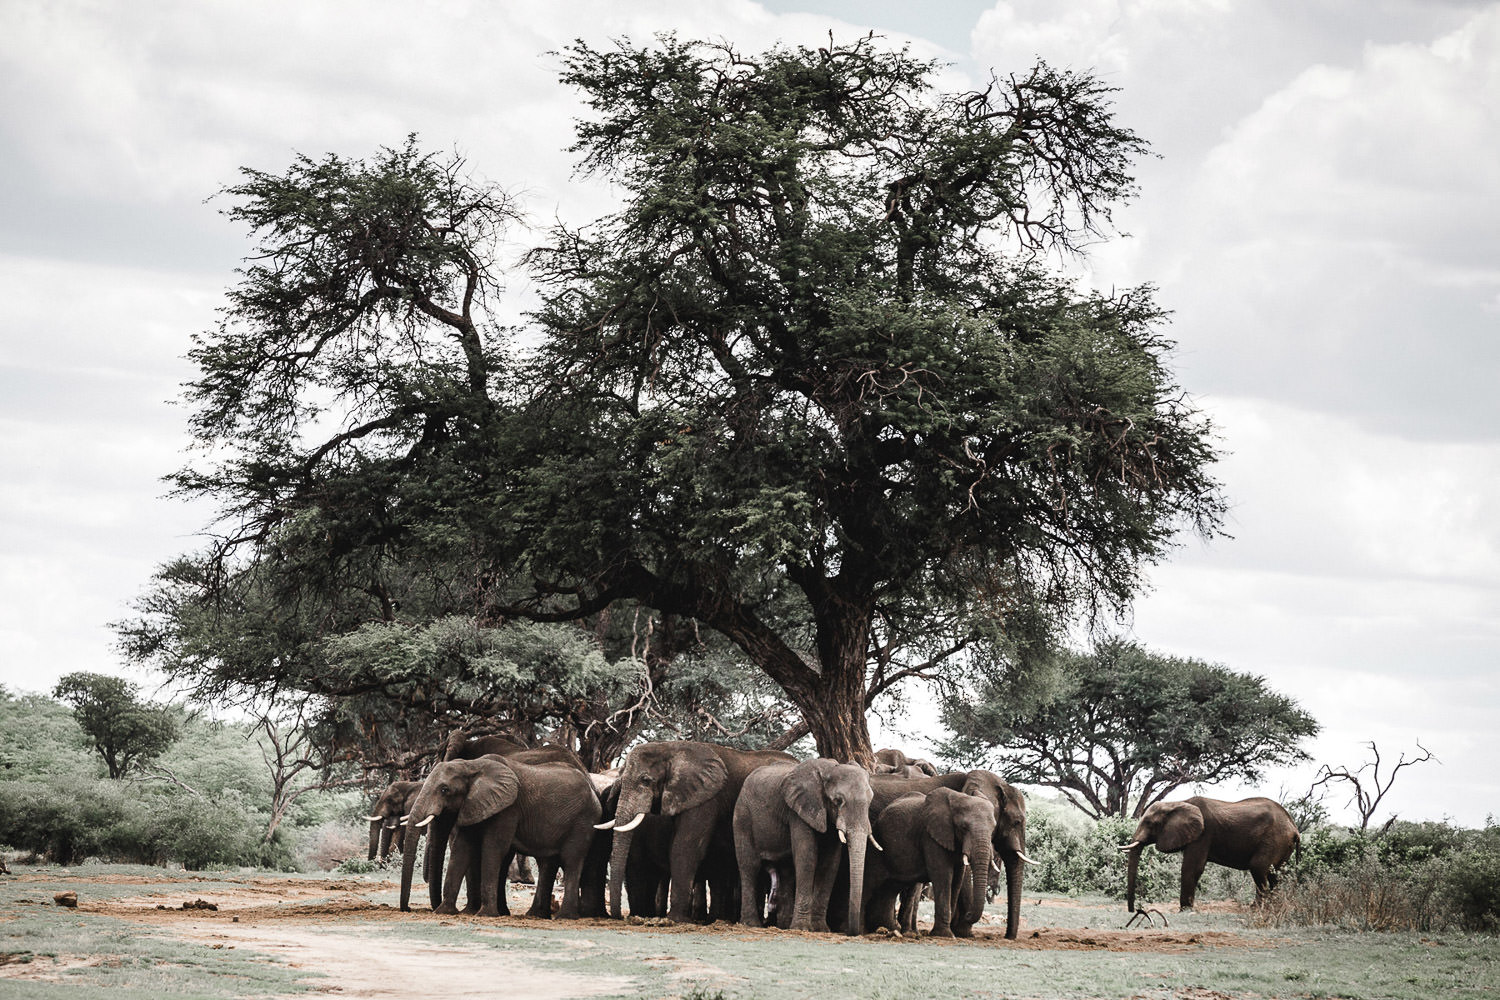 group of elephants in moremi national park during a Christmas safari